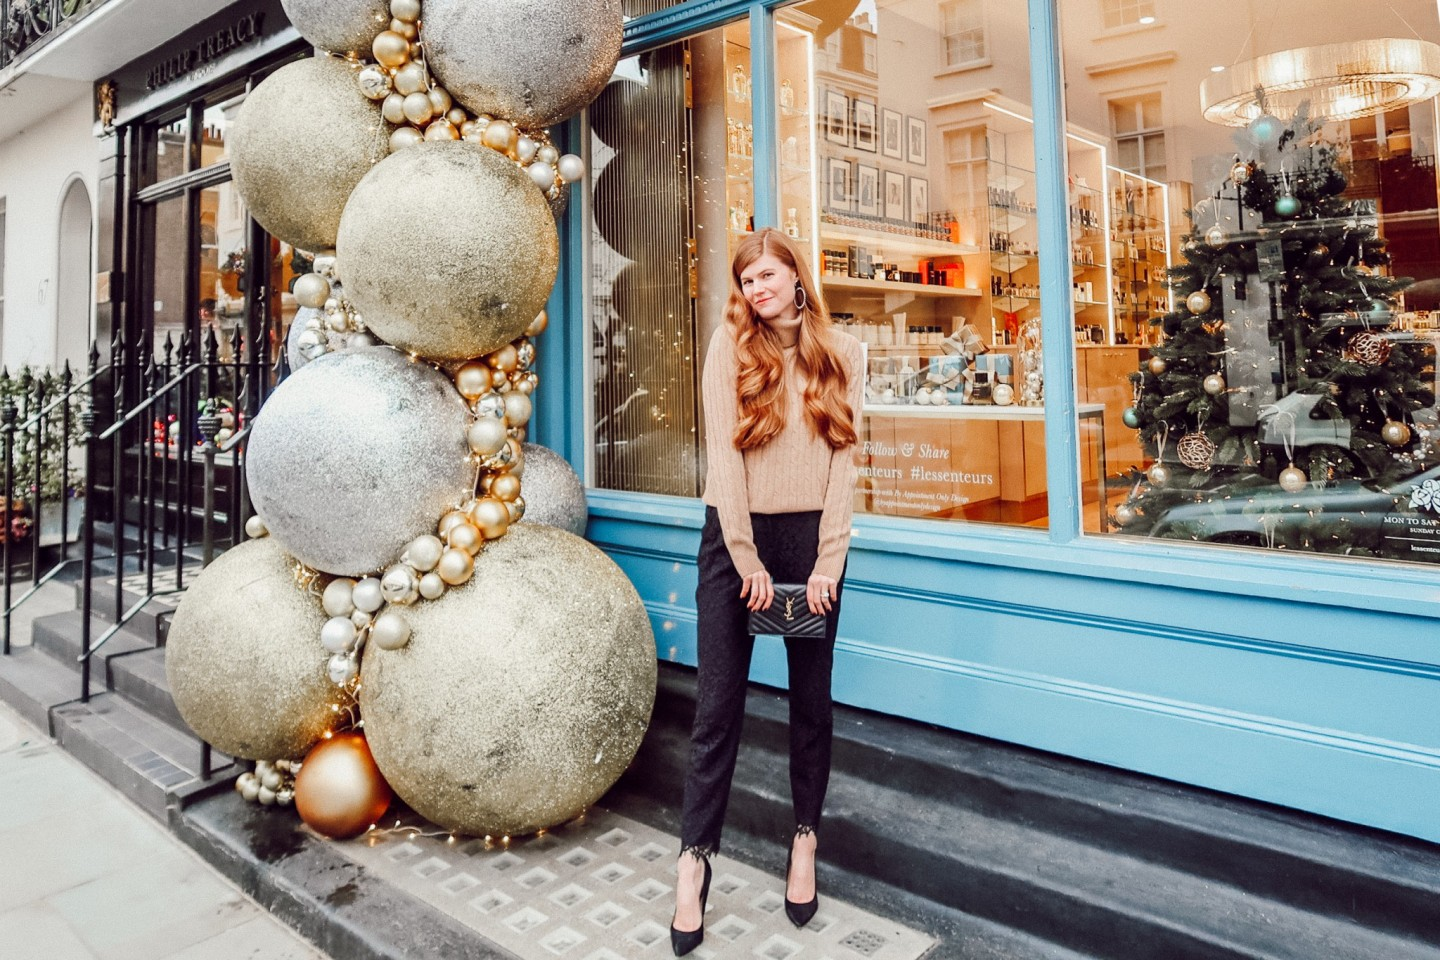 Lifestyle blogger Mollie Moore shares a holiday party outfit idea